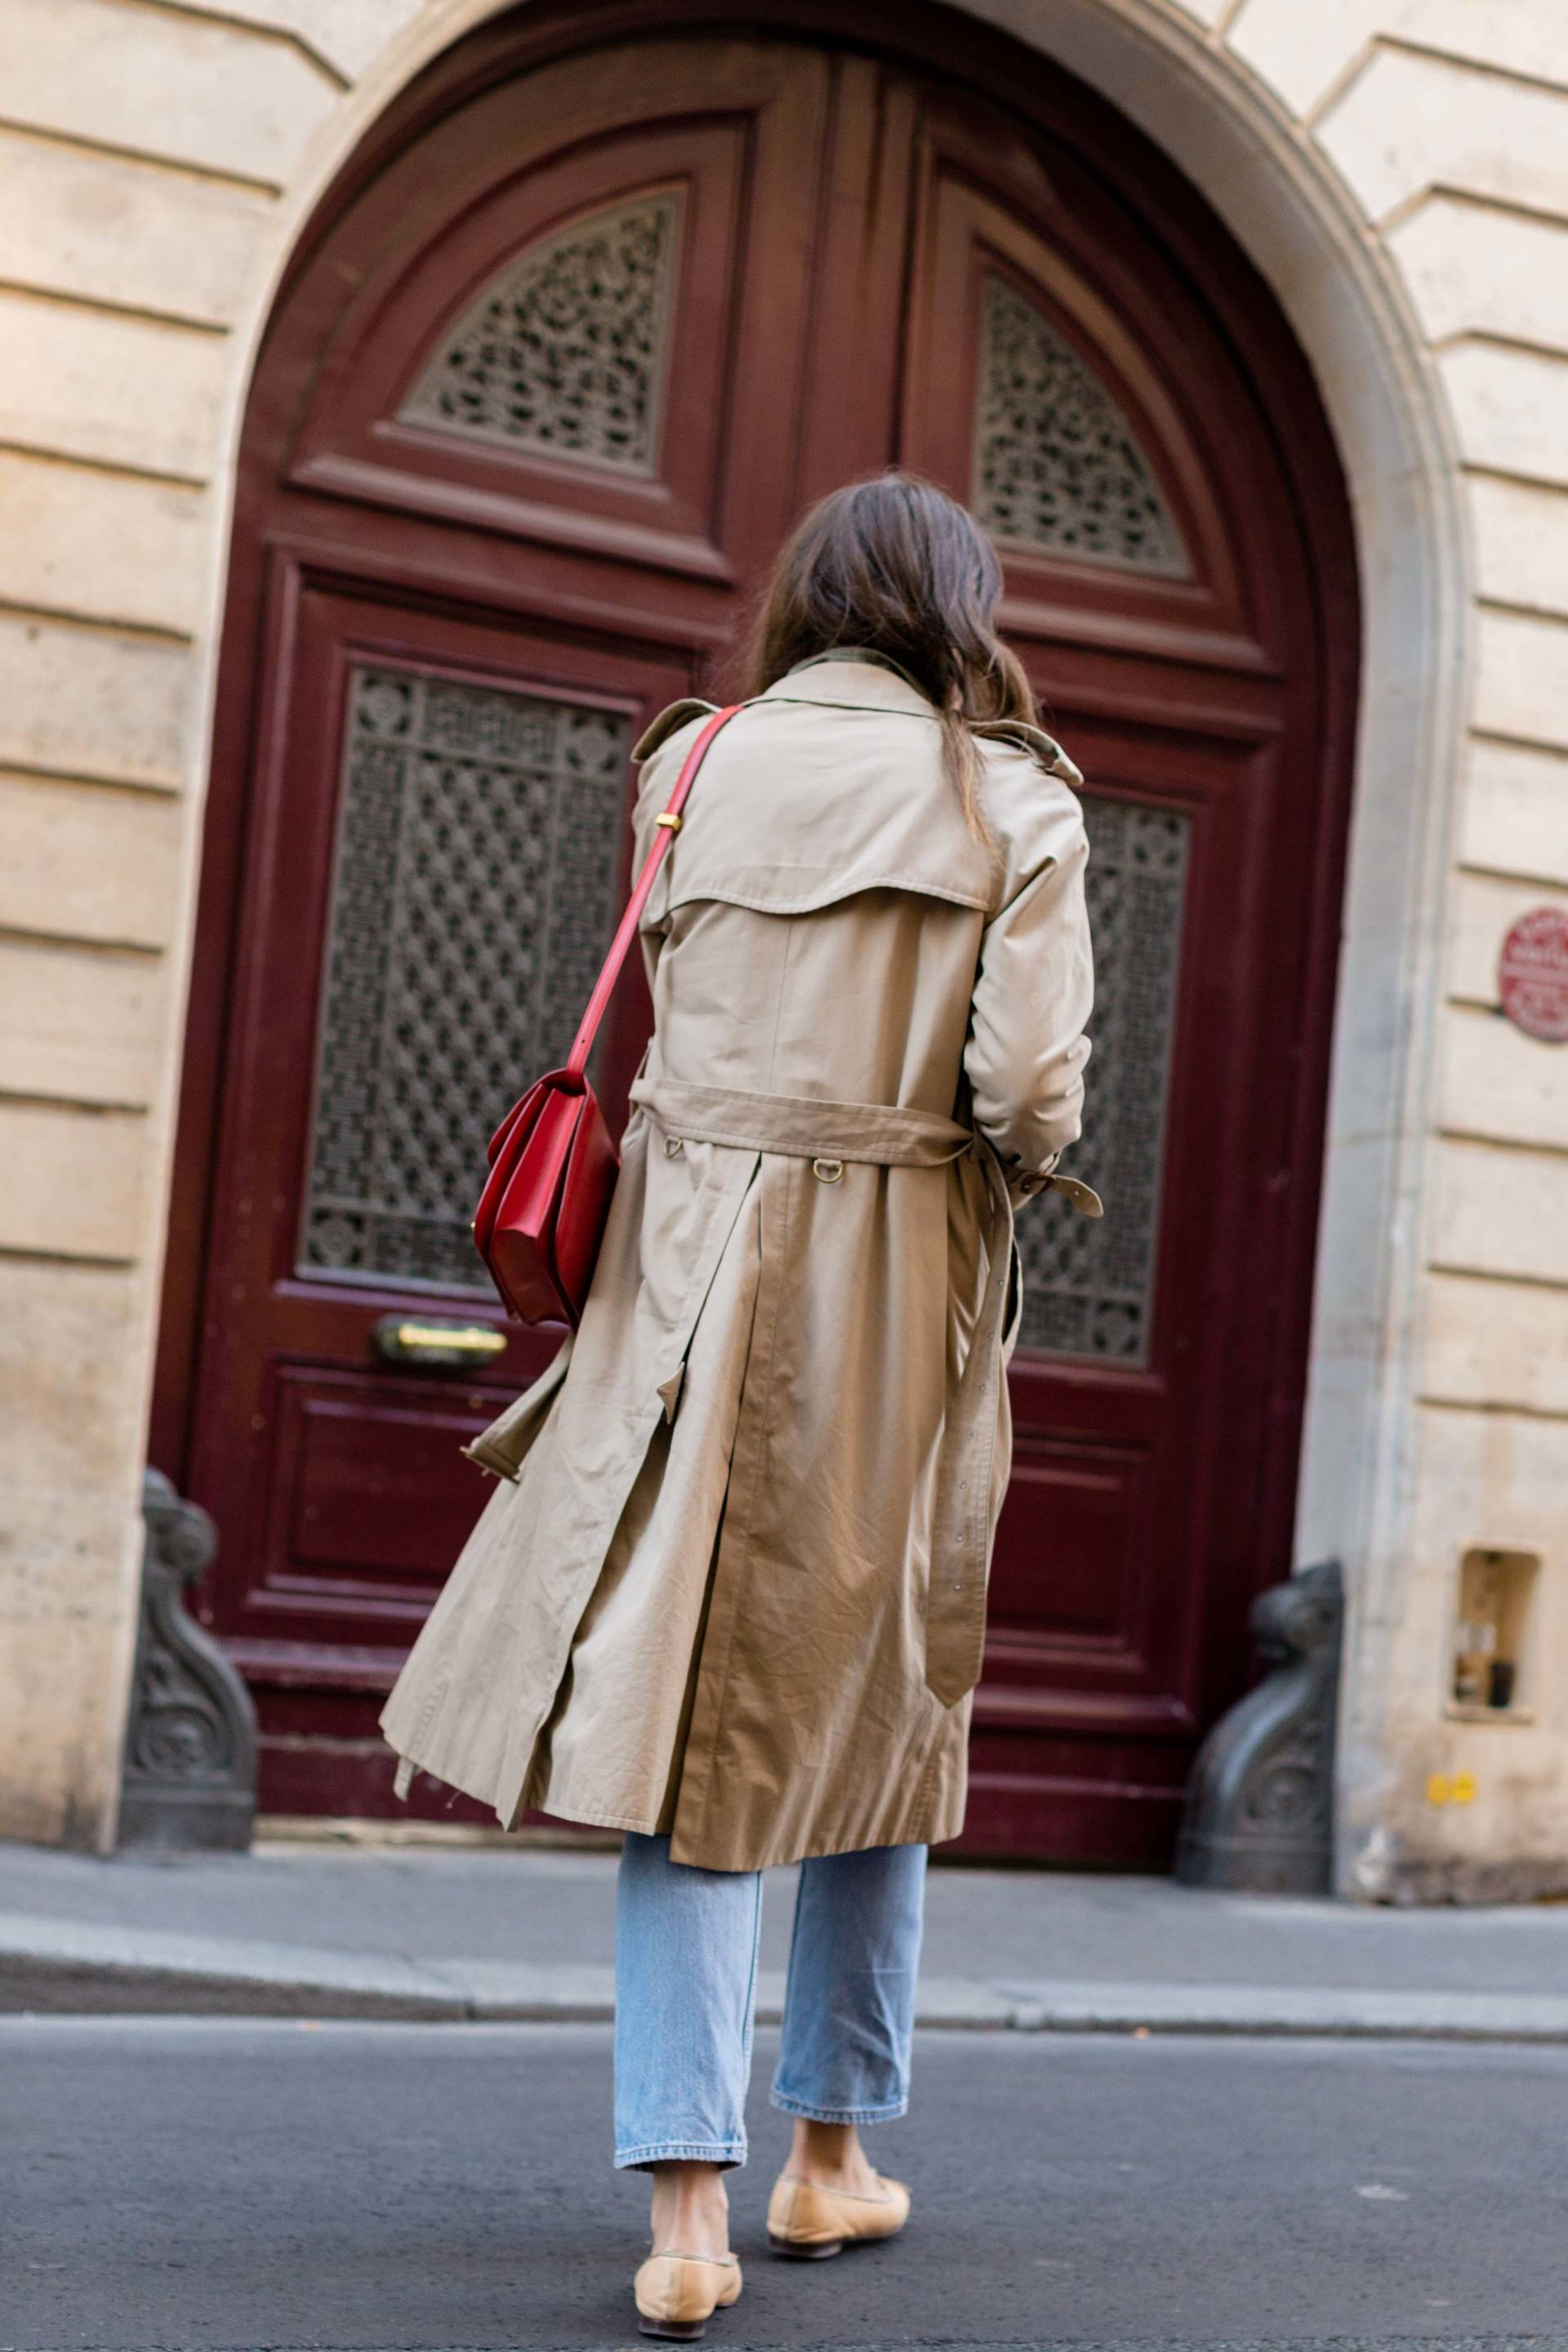 ari_paris_red_celinebag_trench10